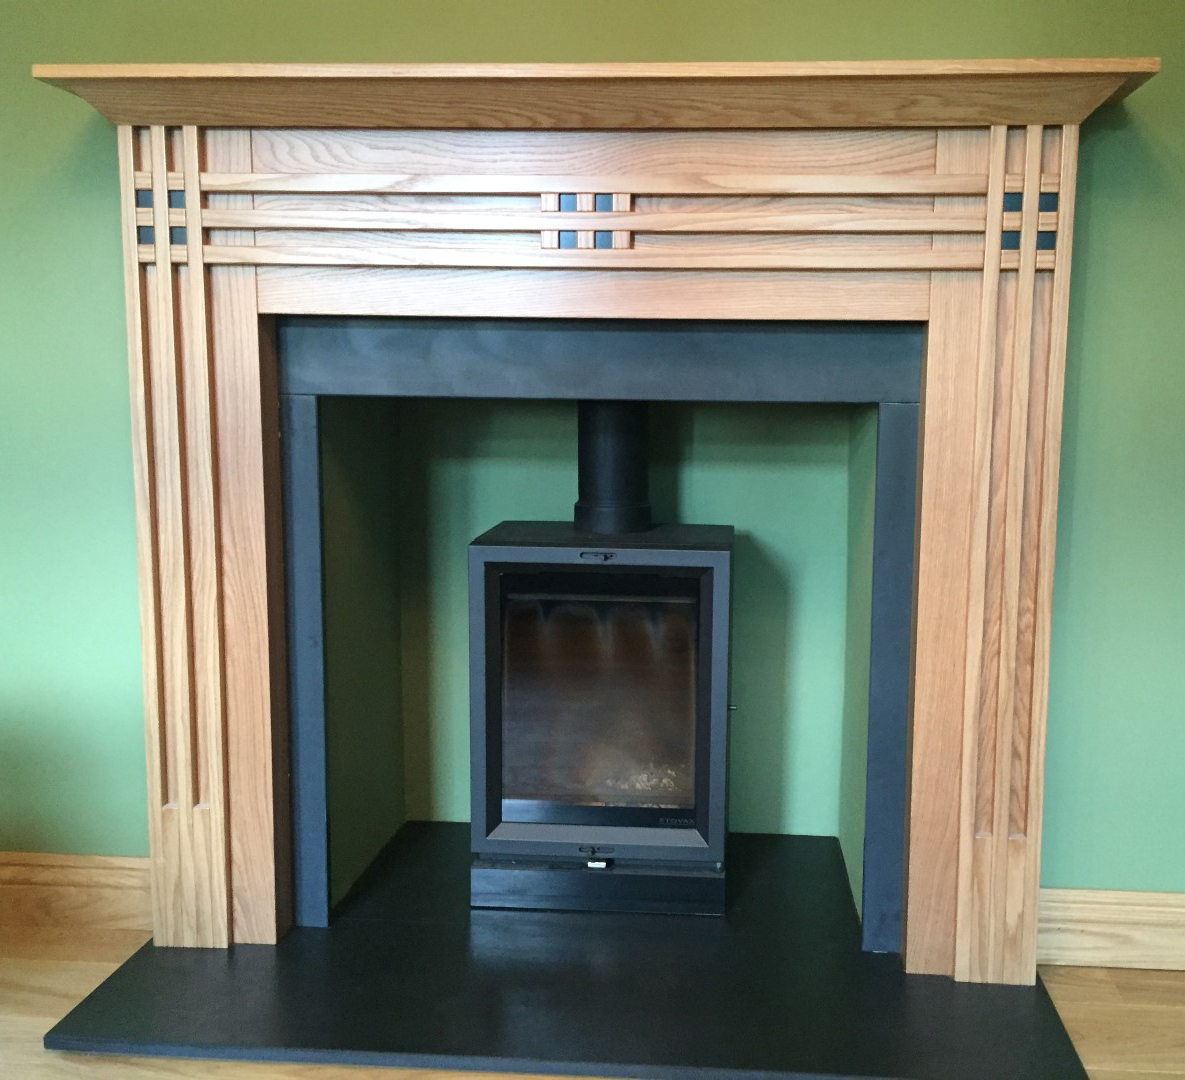 Embers bristol install slate hearths